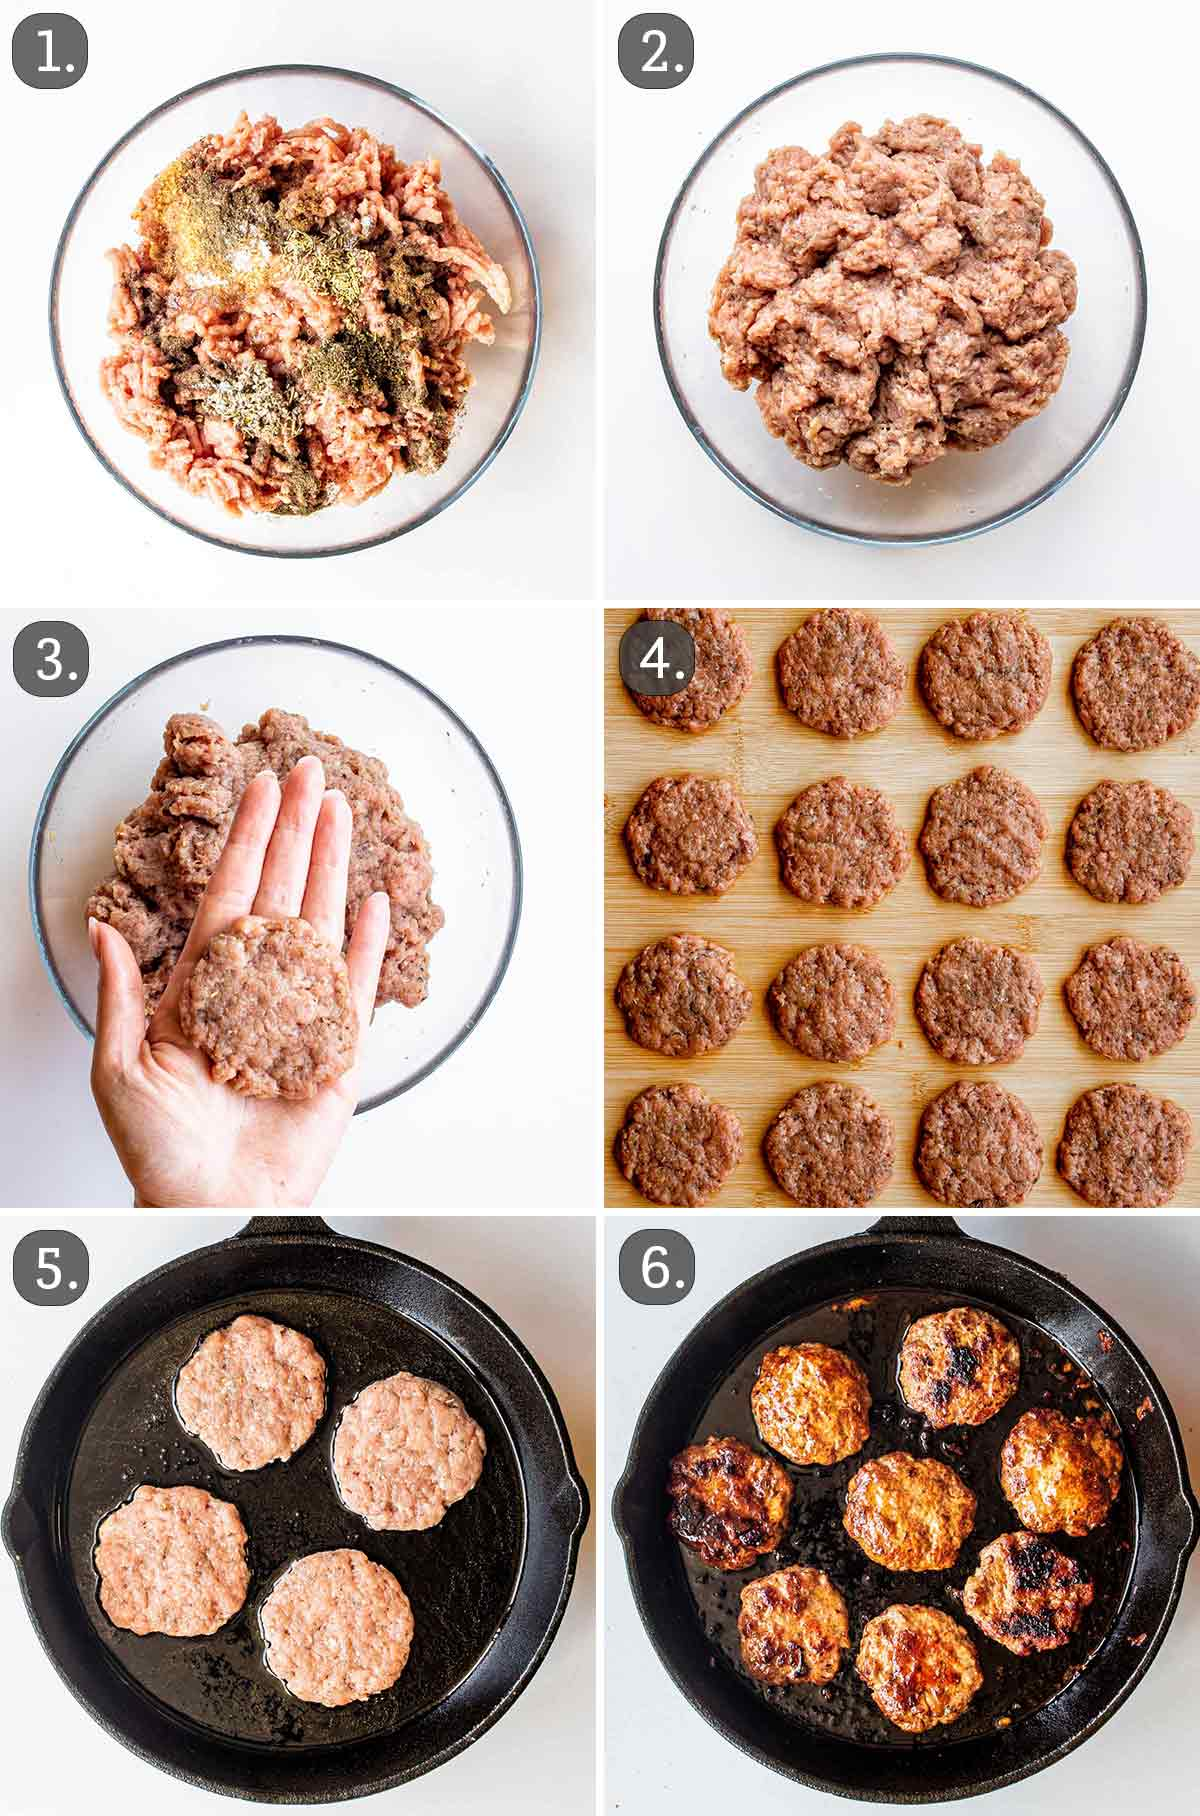 detailed process shots showing how to make homemade breakfast sausages.